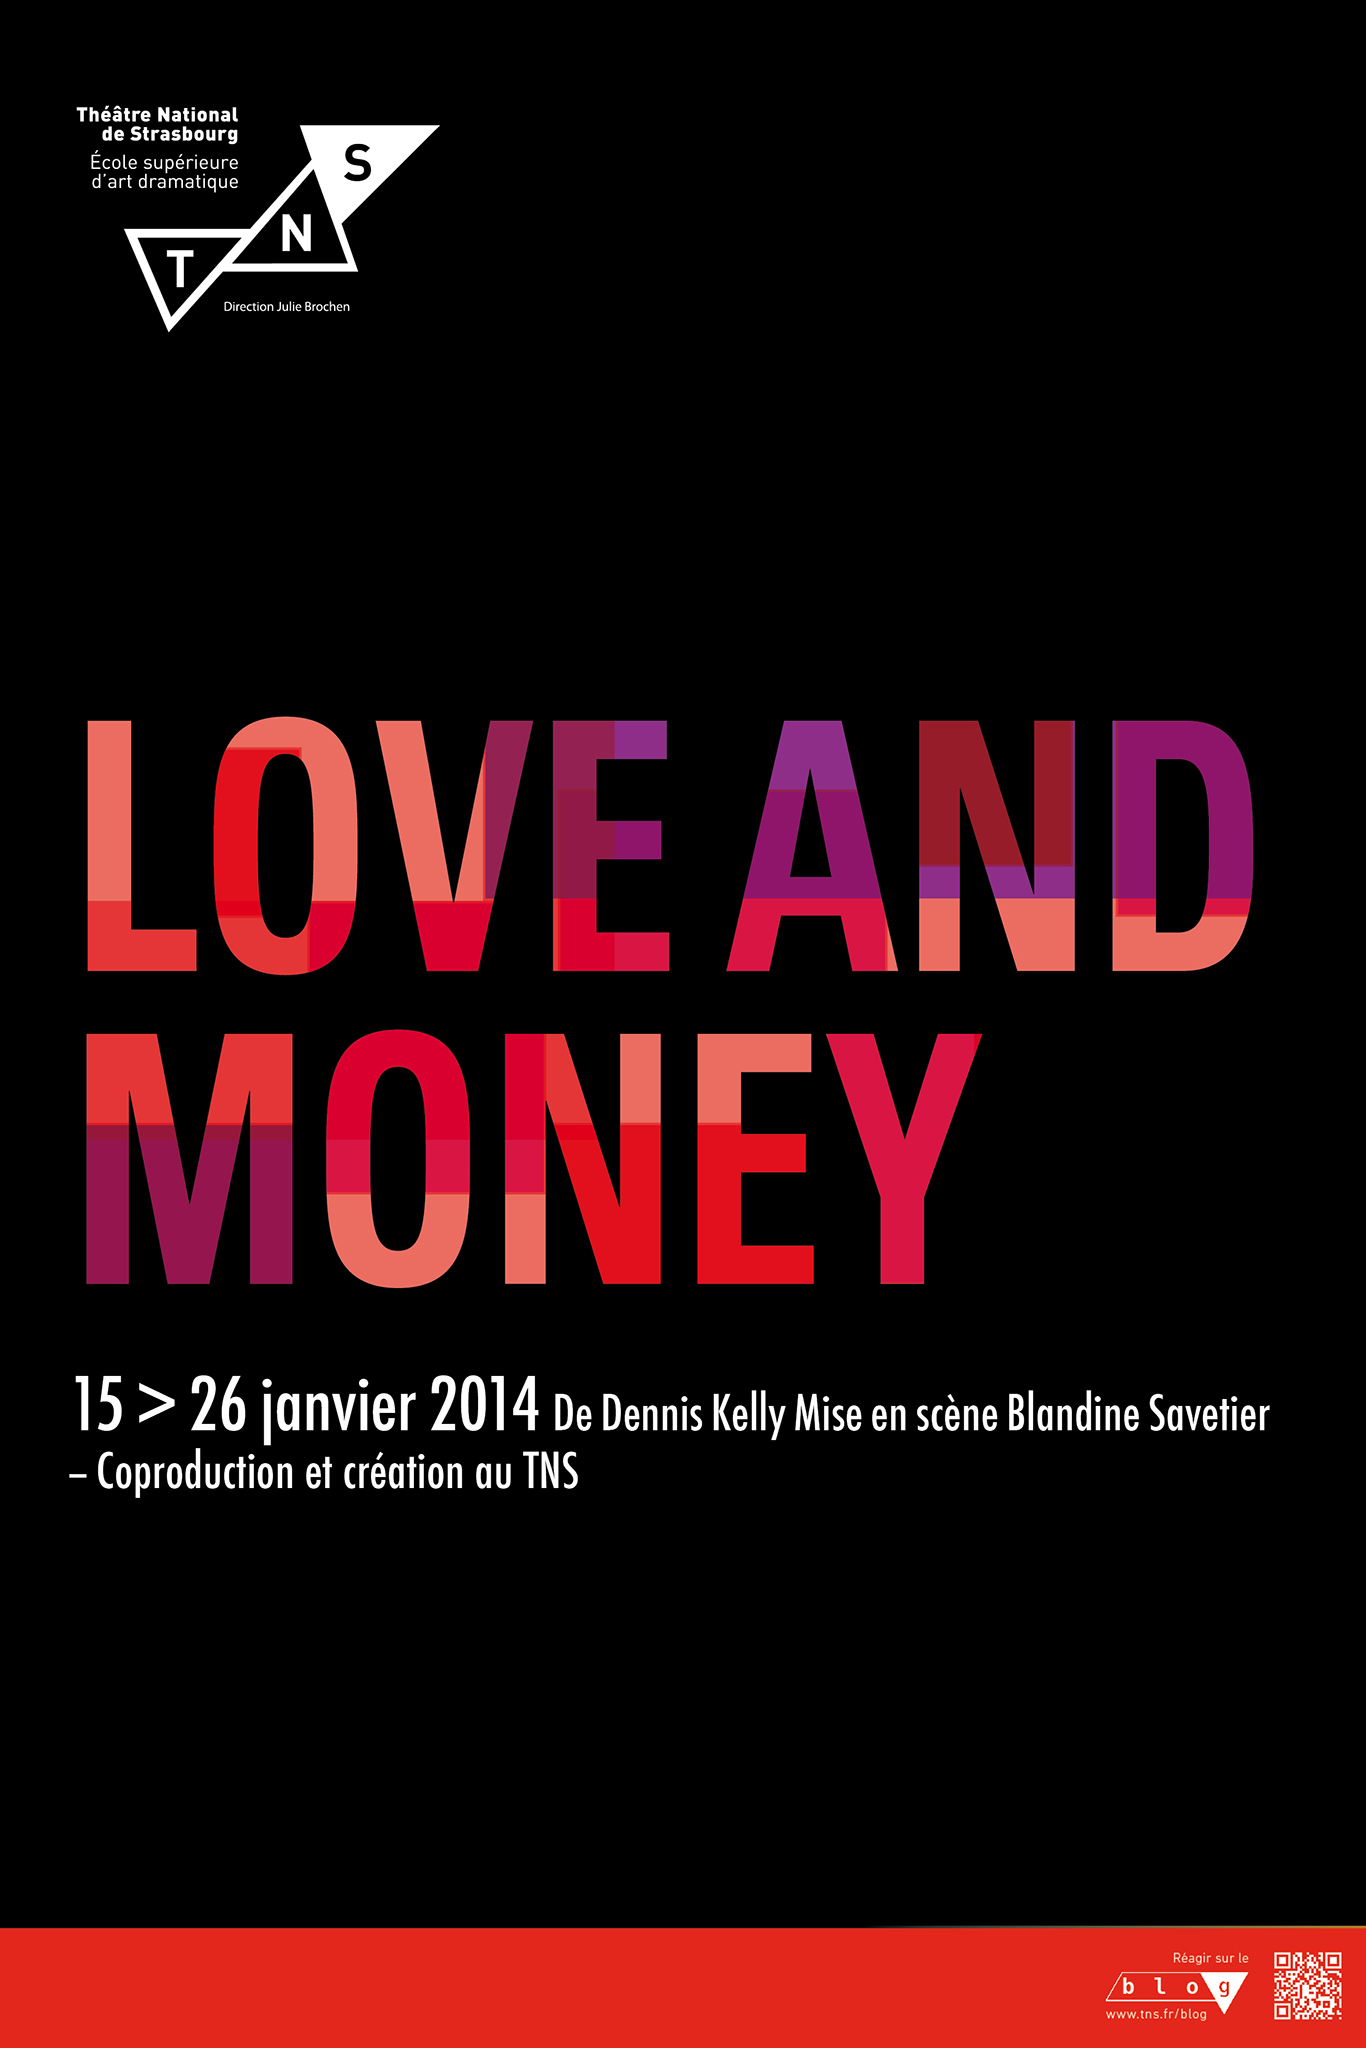 Love And Money Affiche Tania Giemza 06